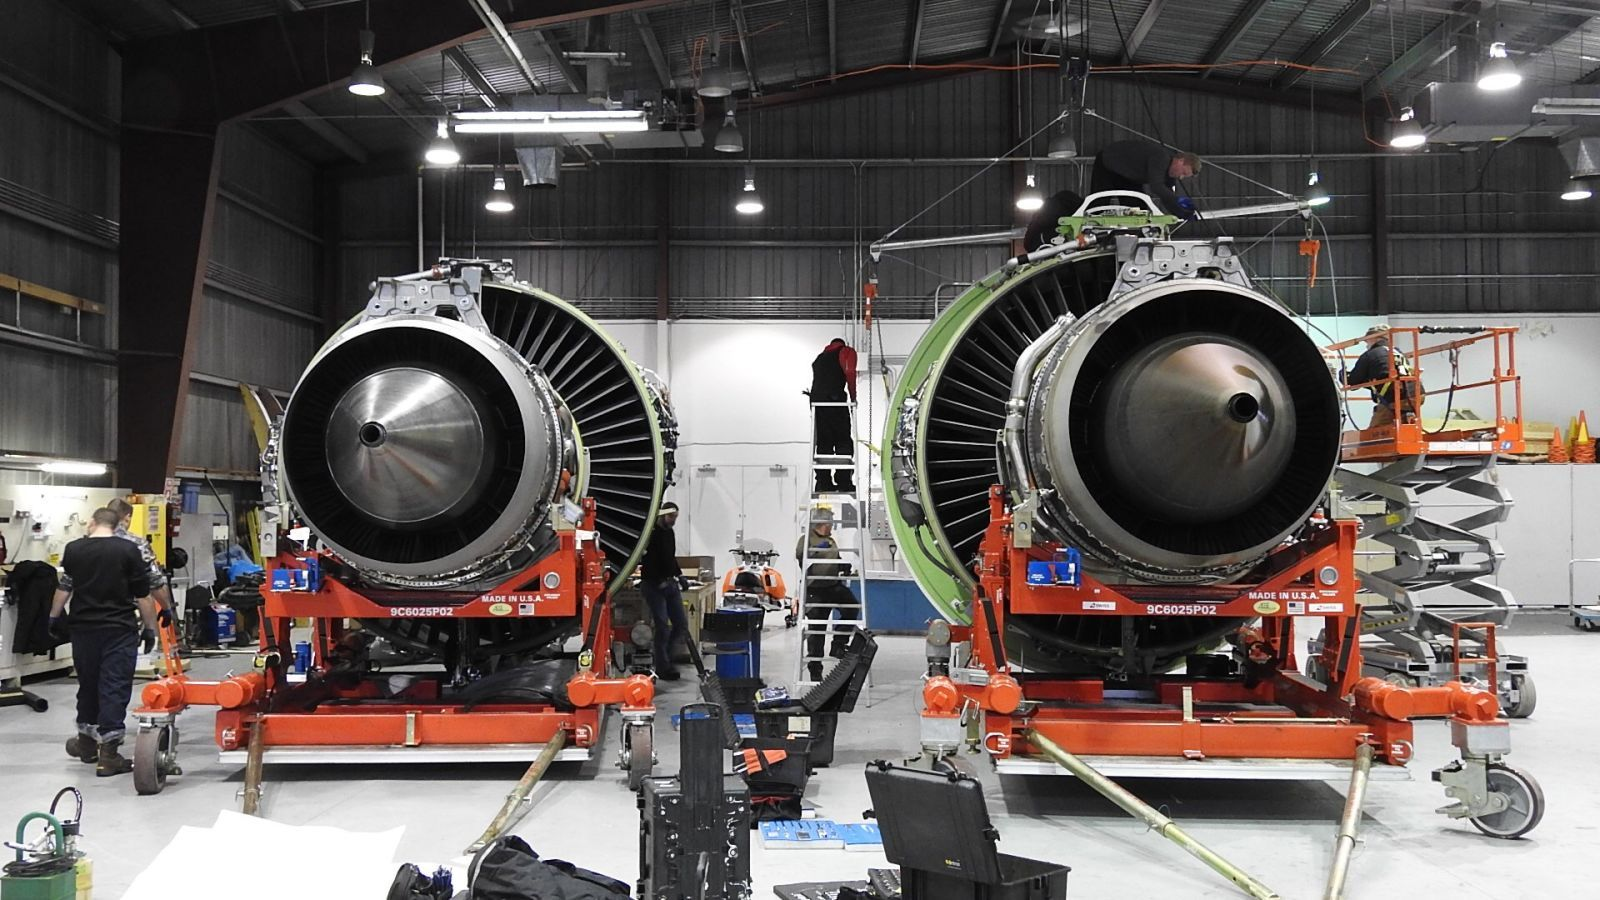 Replacing the World's Largest Jet Engine at 40-Below